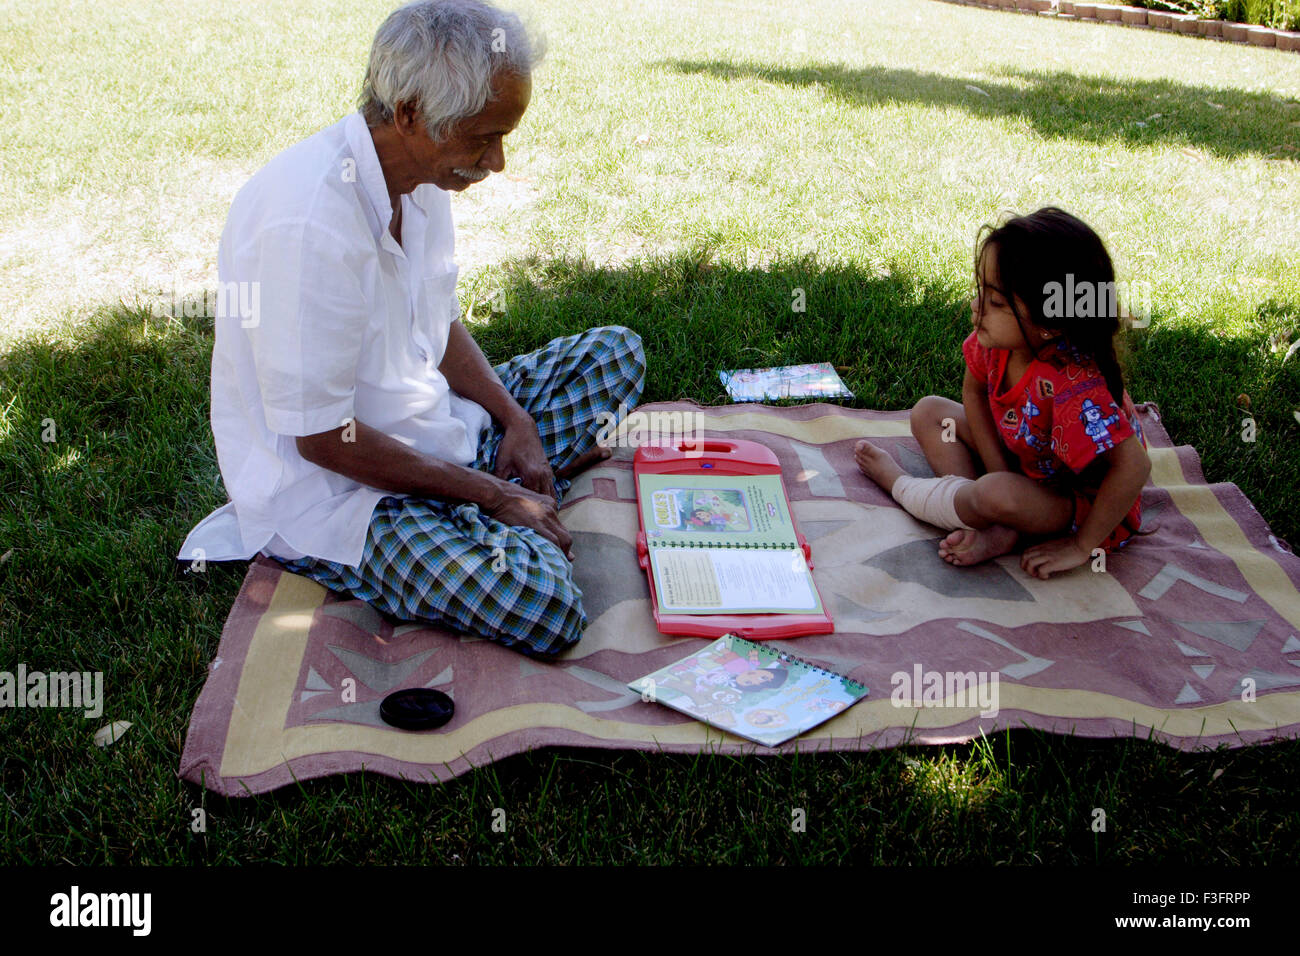 Grandfather reading story book and granddaughter listening - Stock Image